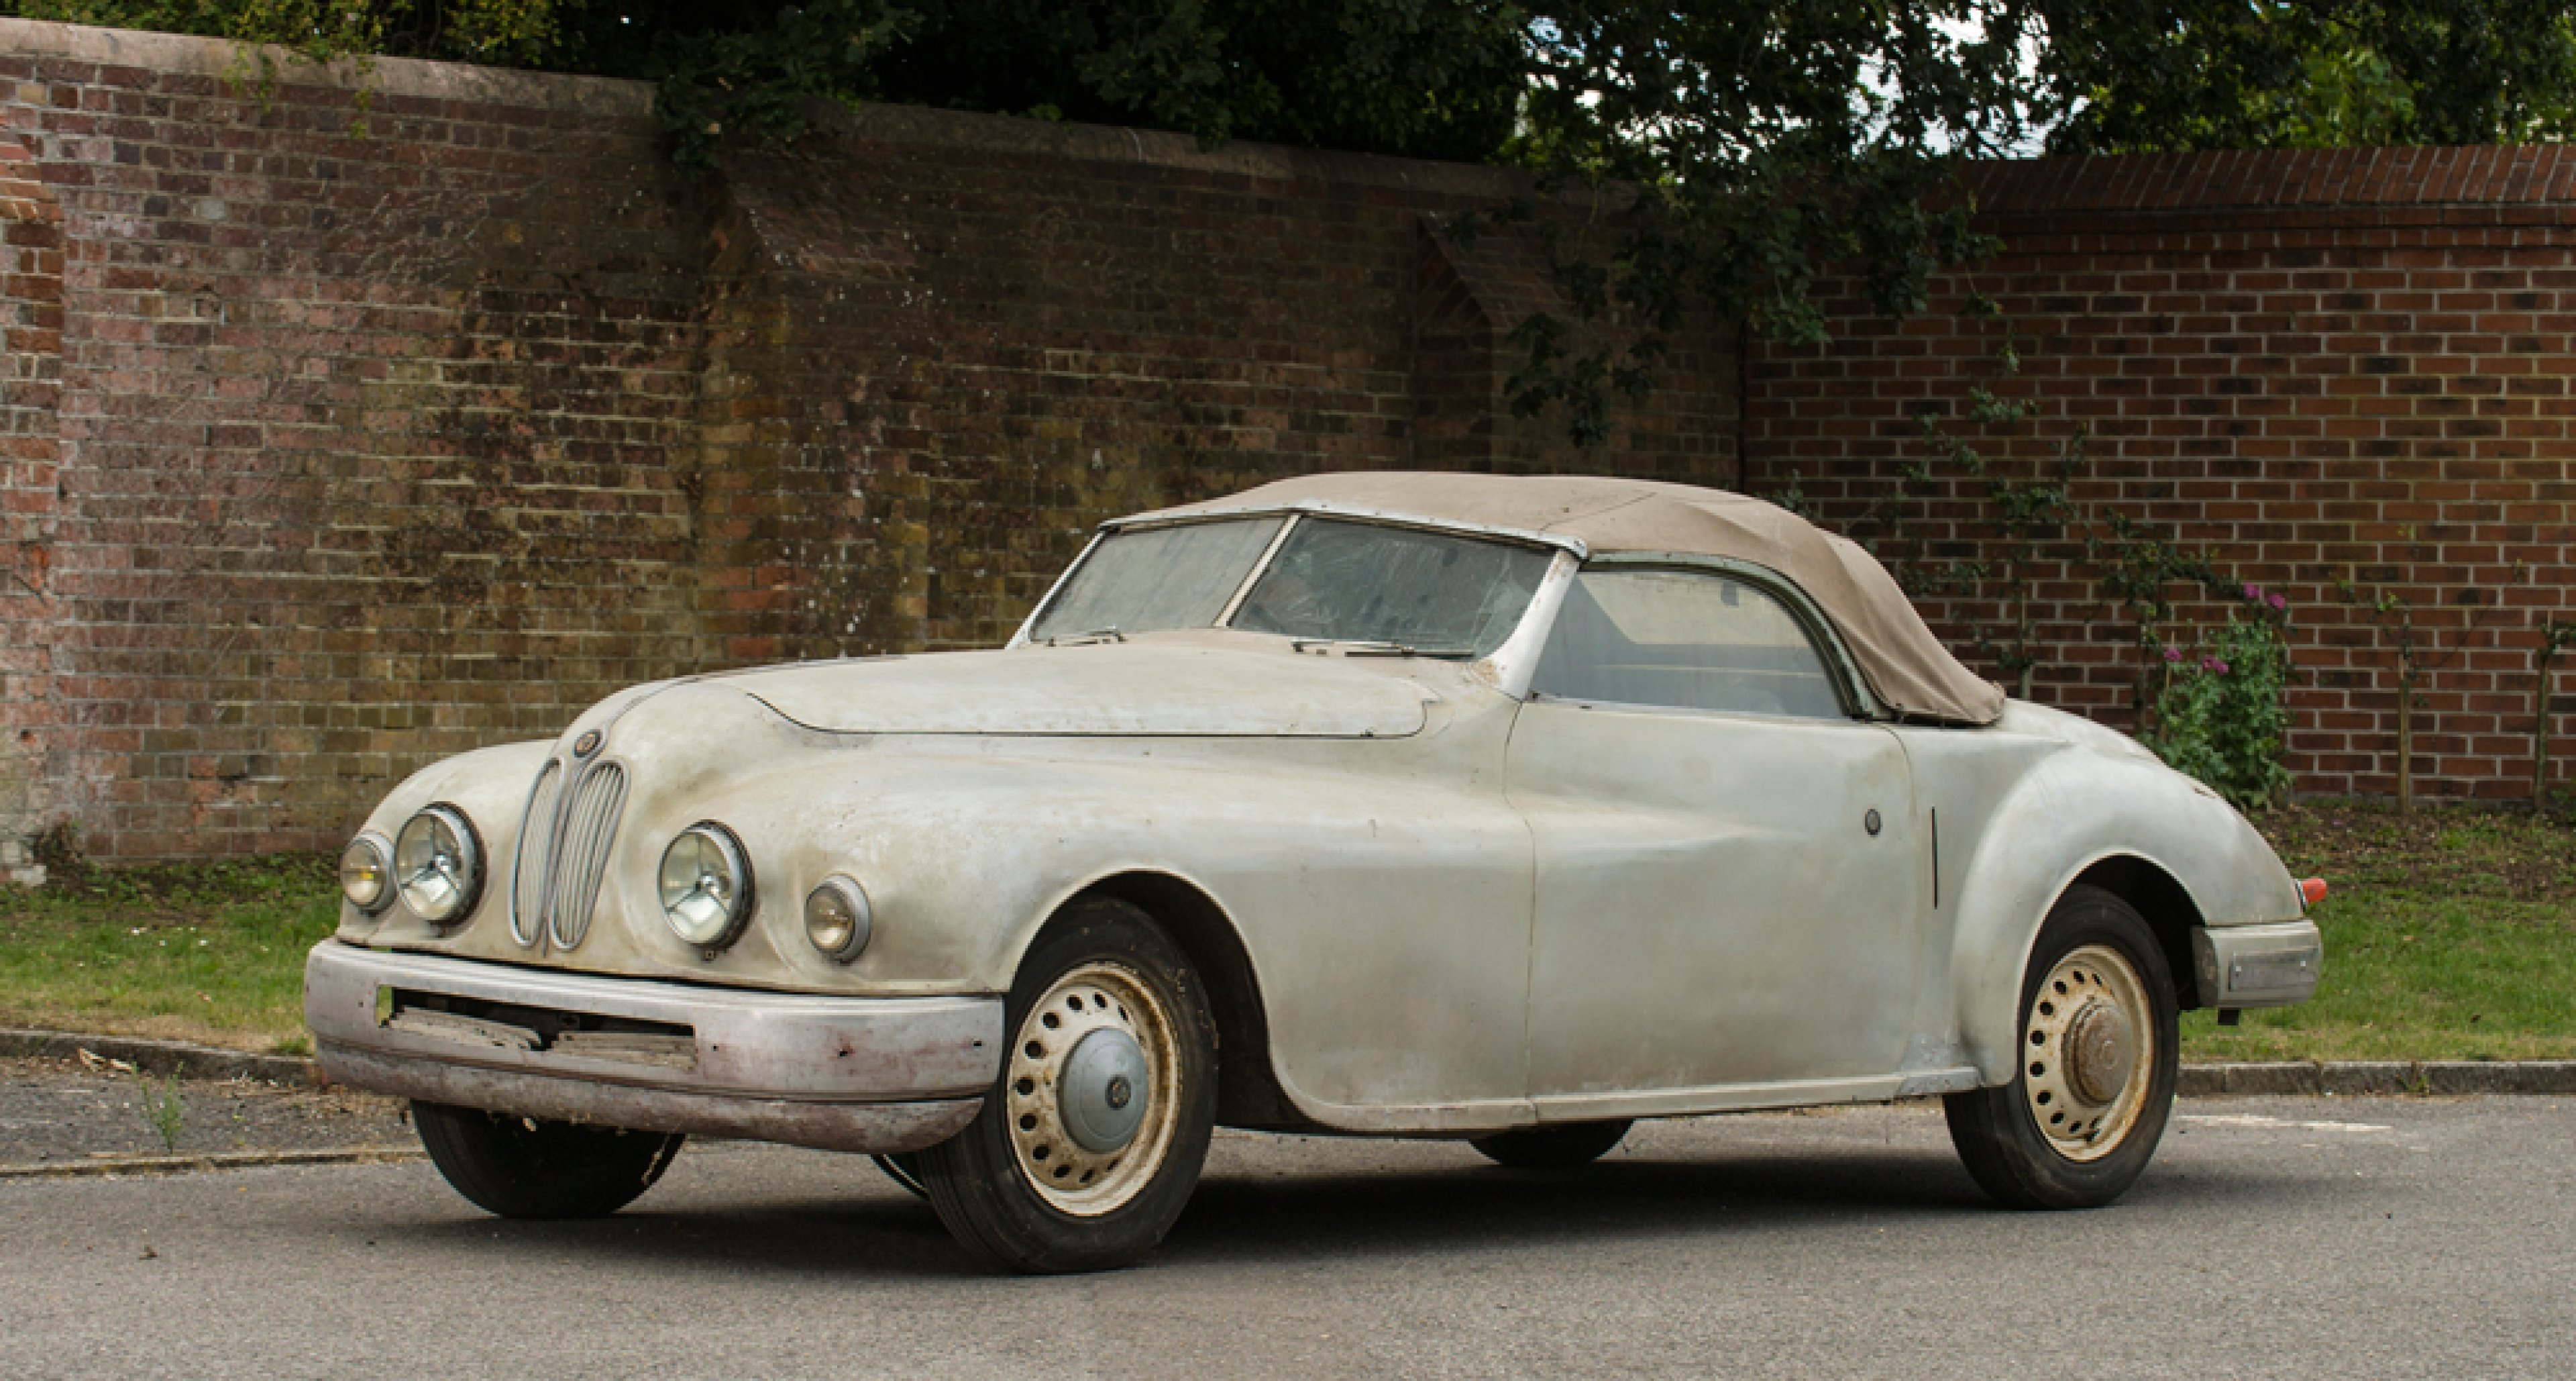 Barn Finds And Restoration Projects At Bonhams Beaulieu Sale